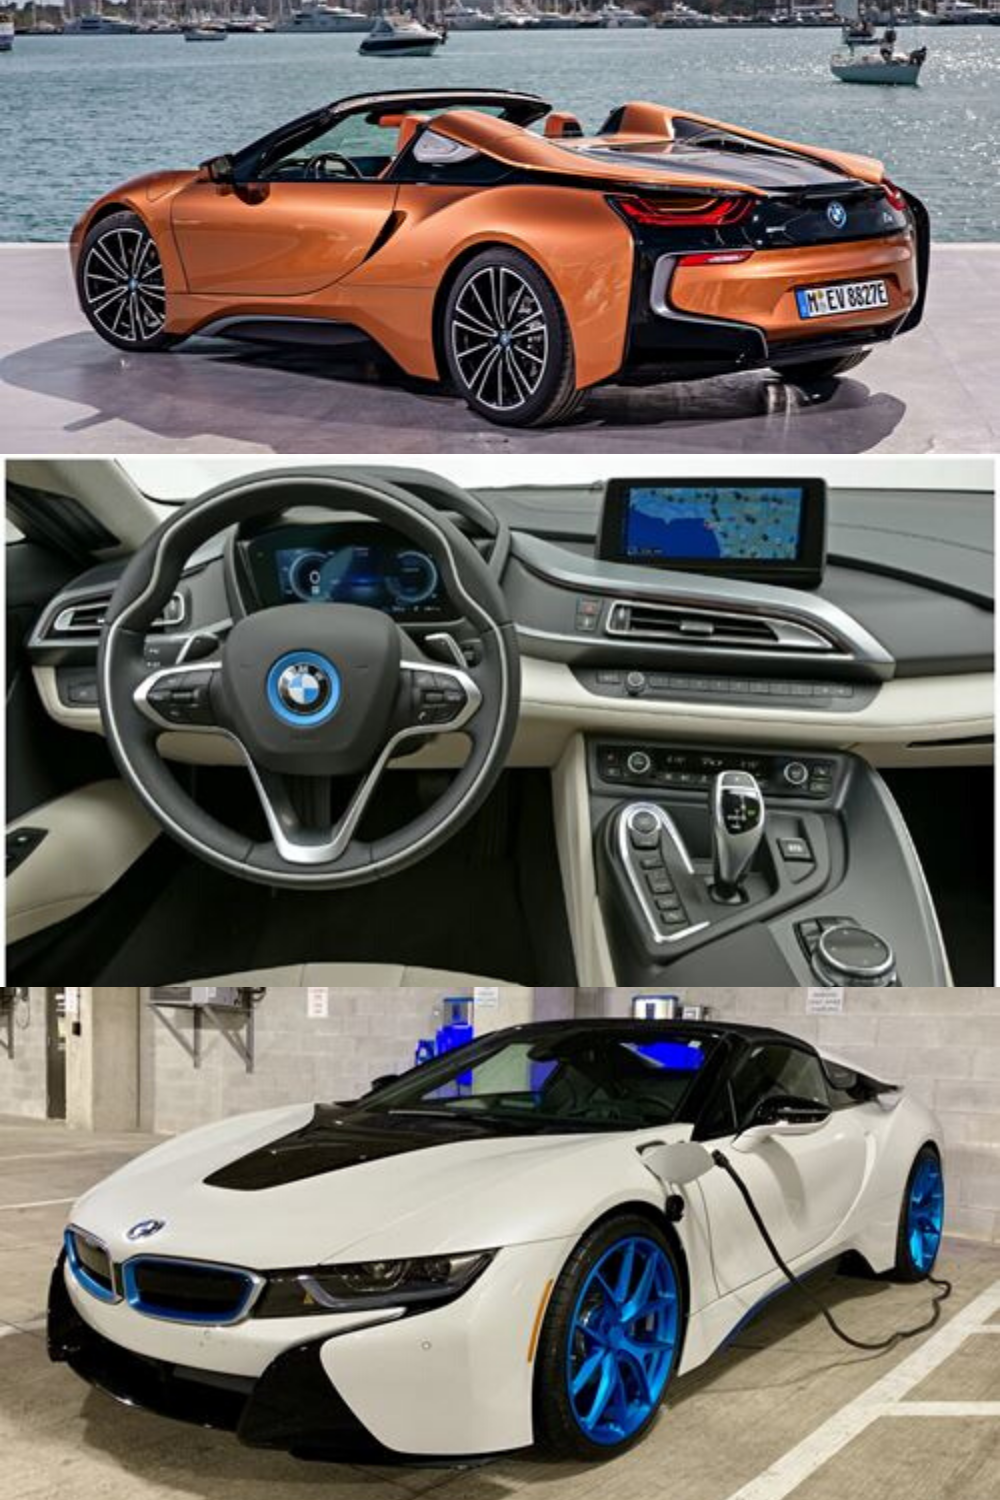 Bmw I8 Hybrid Sports Car Plug In Hybrid In 2020 Hybrid Sports Car Bmw I8 Personalized Car Accessories